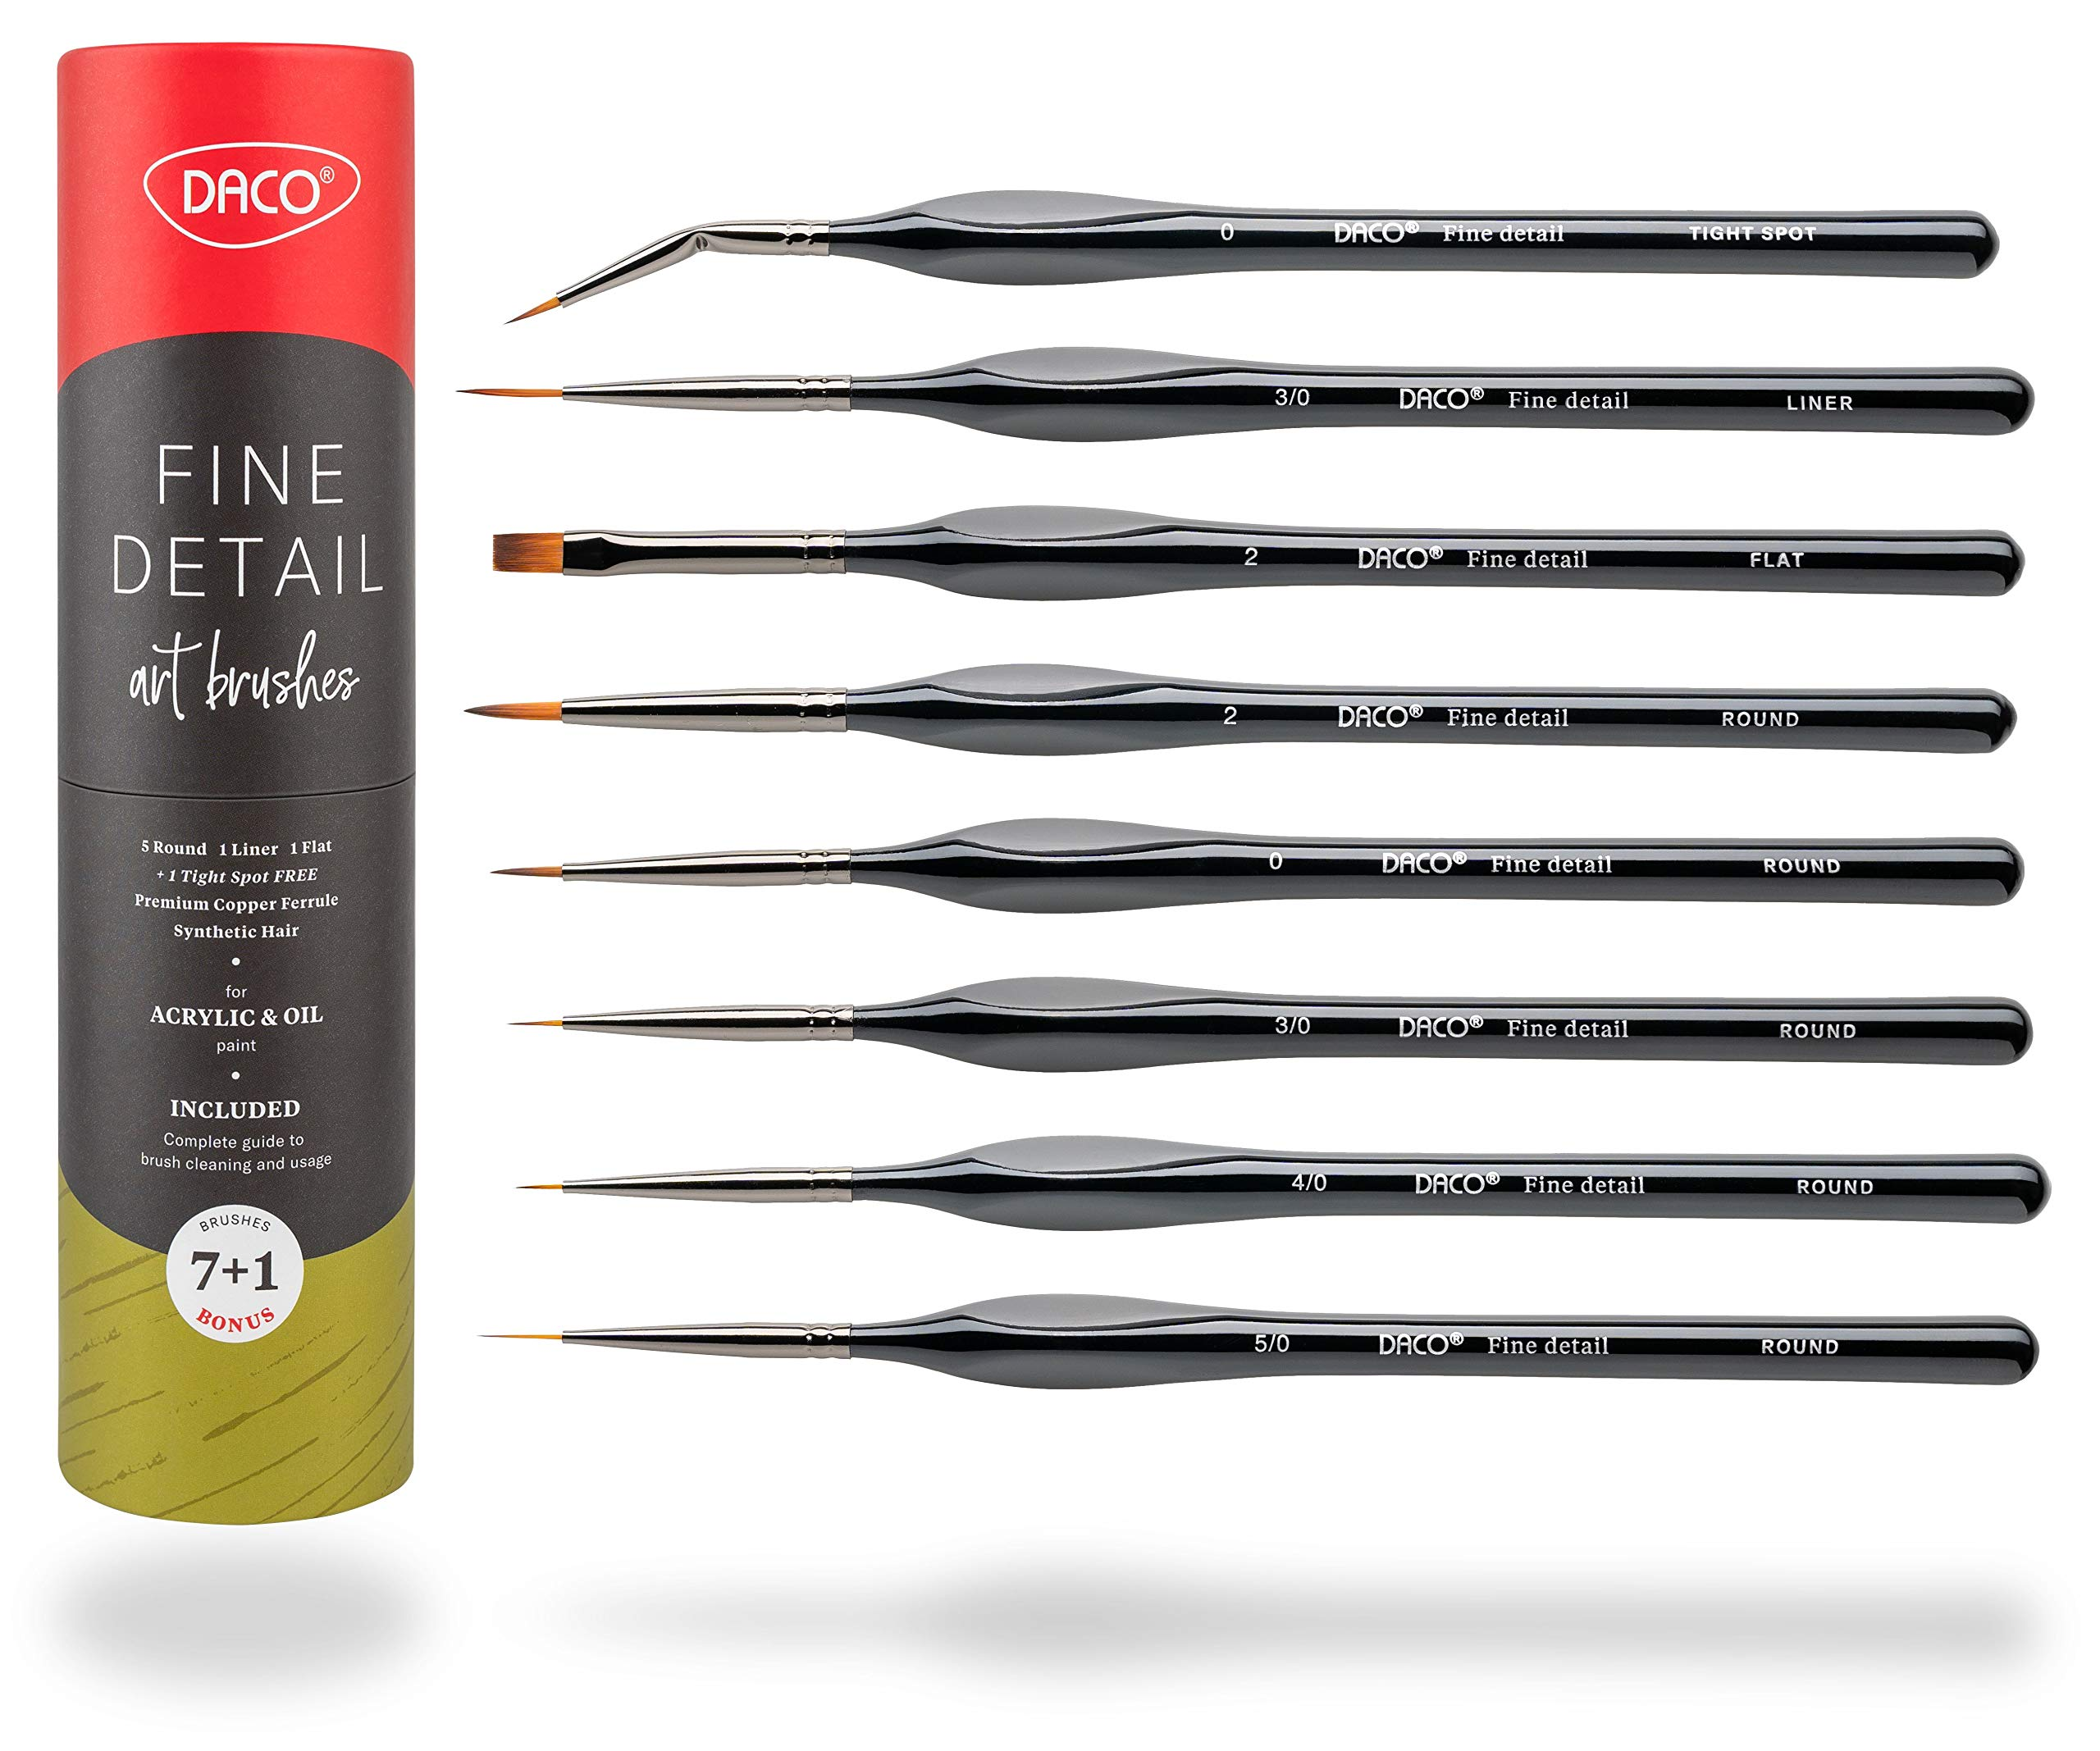 DACO Detail Paint Brush Set, 7pcs +1 Fine Miniature Paint Brushes Kit with Ergonomic Handle, Holder and Travel Bag, for Acrylic, Oil, Watercolor, Art, Scale Model, Face, Paint by Numbers by DACO